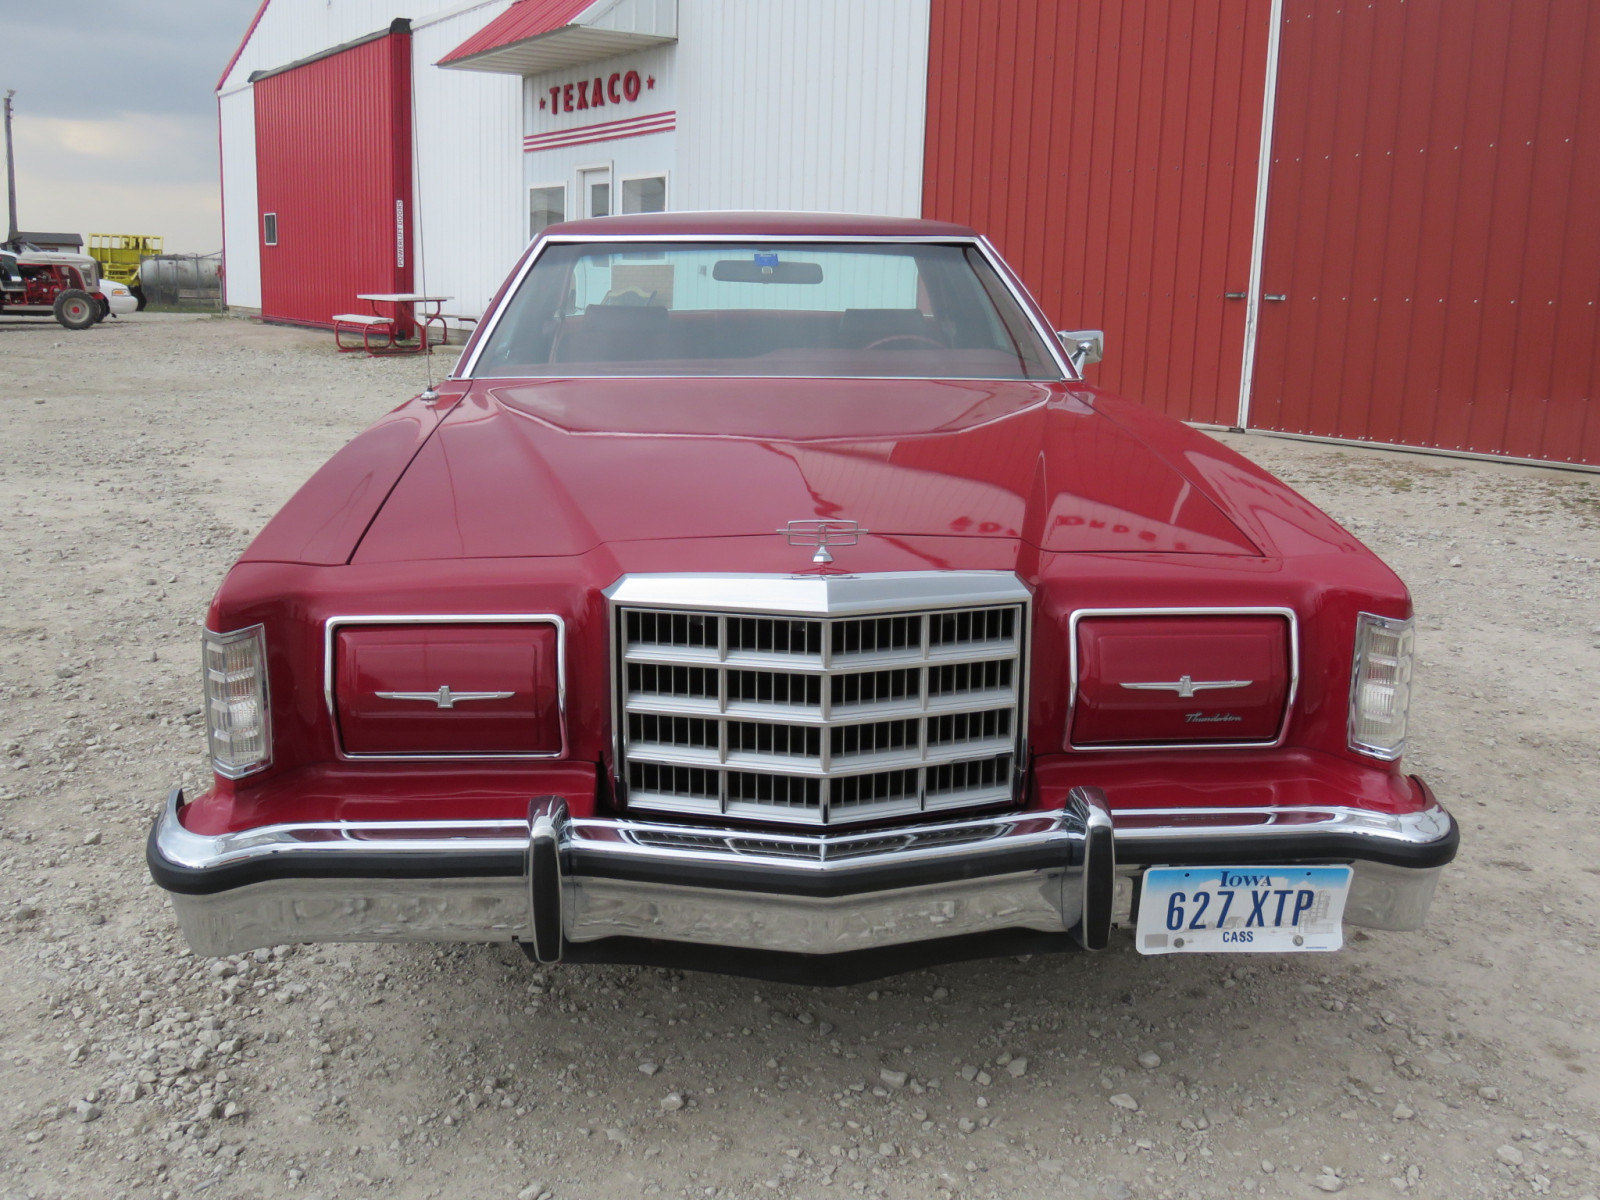 1979 Ford Thunderbird Coupe - Image 2